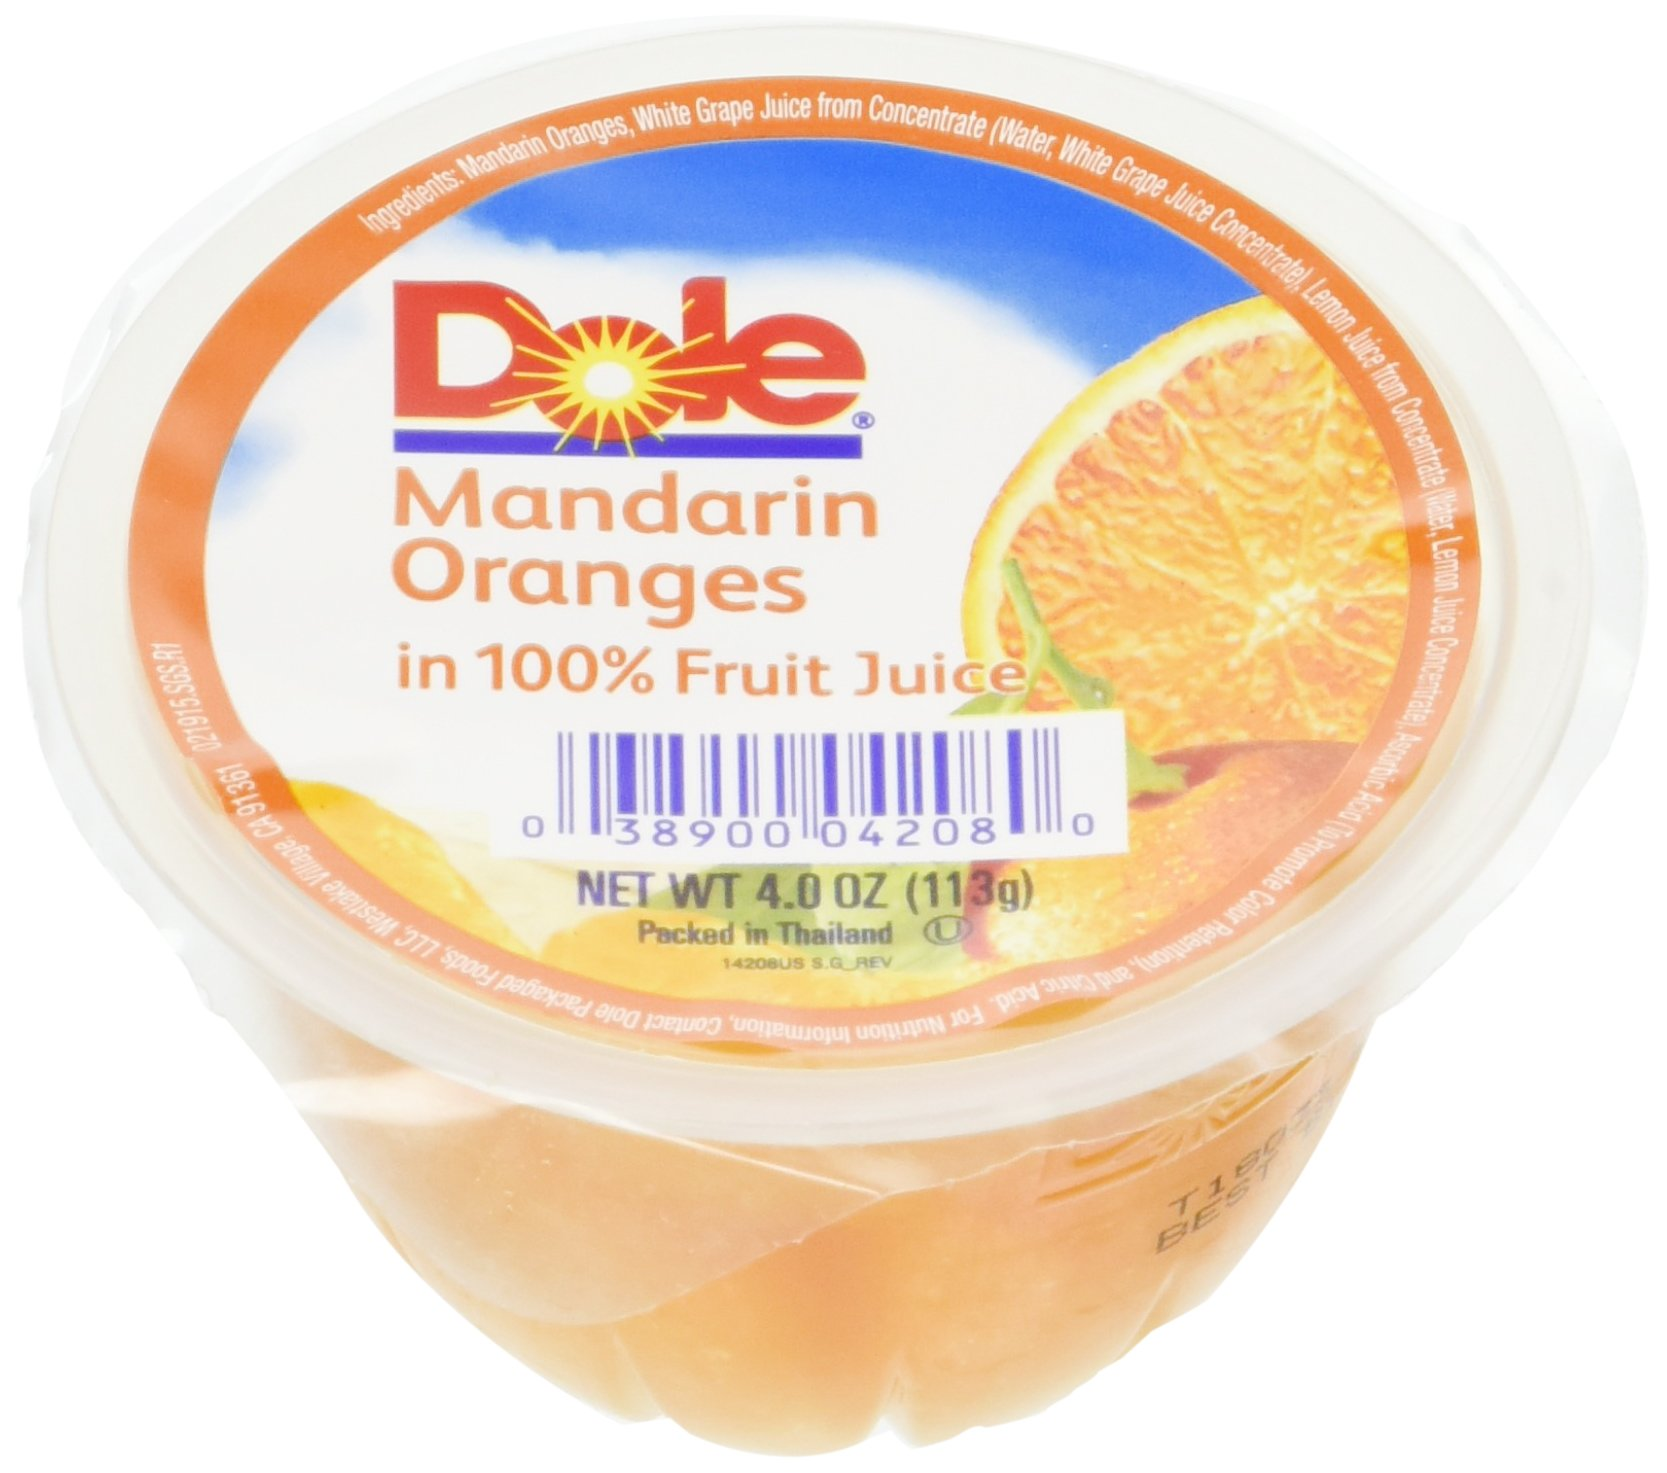 Dole Mandarin Oranges in Light Syrup, 4-Ounce Containers (Pack of 36)